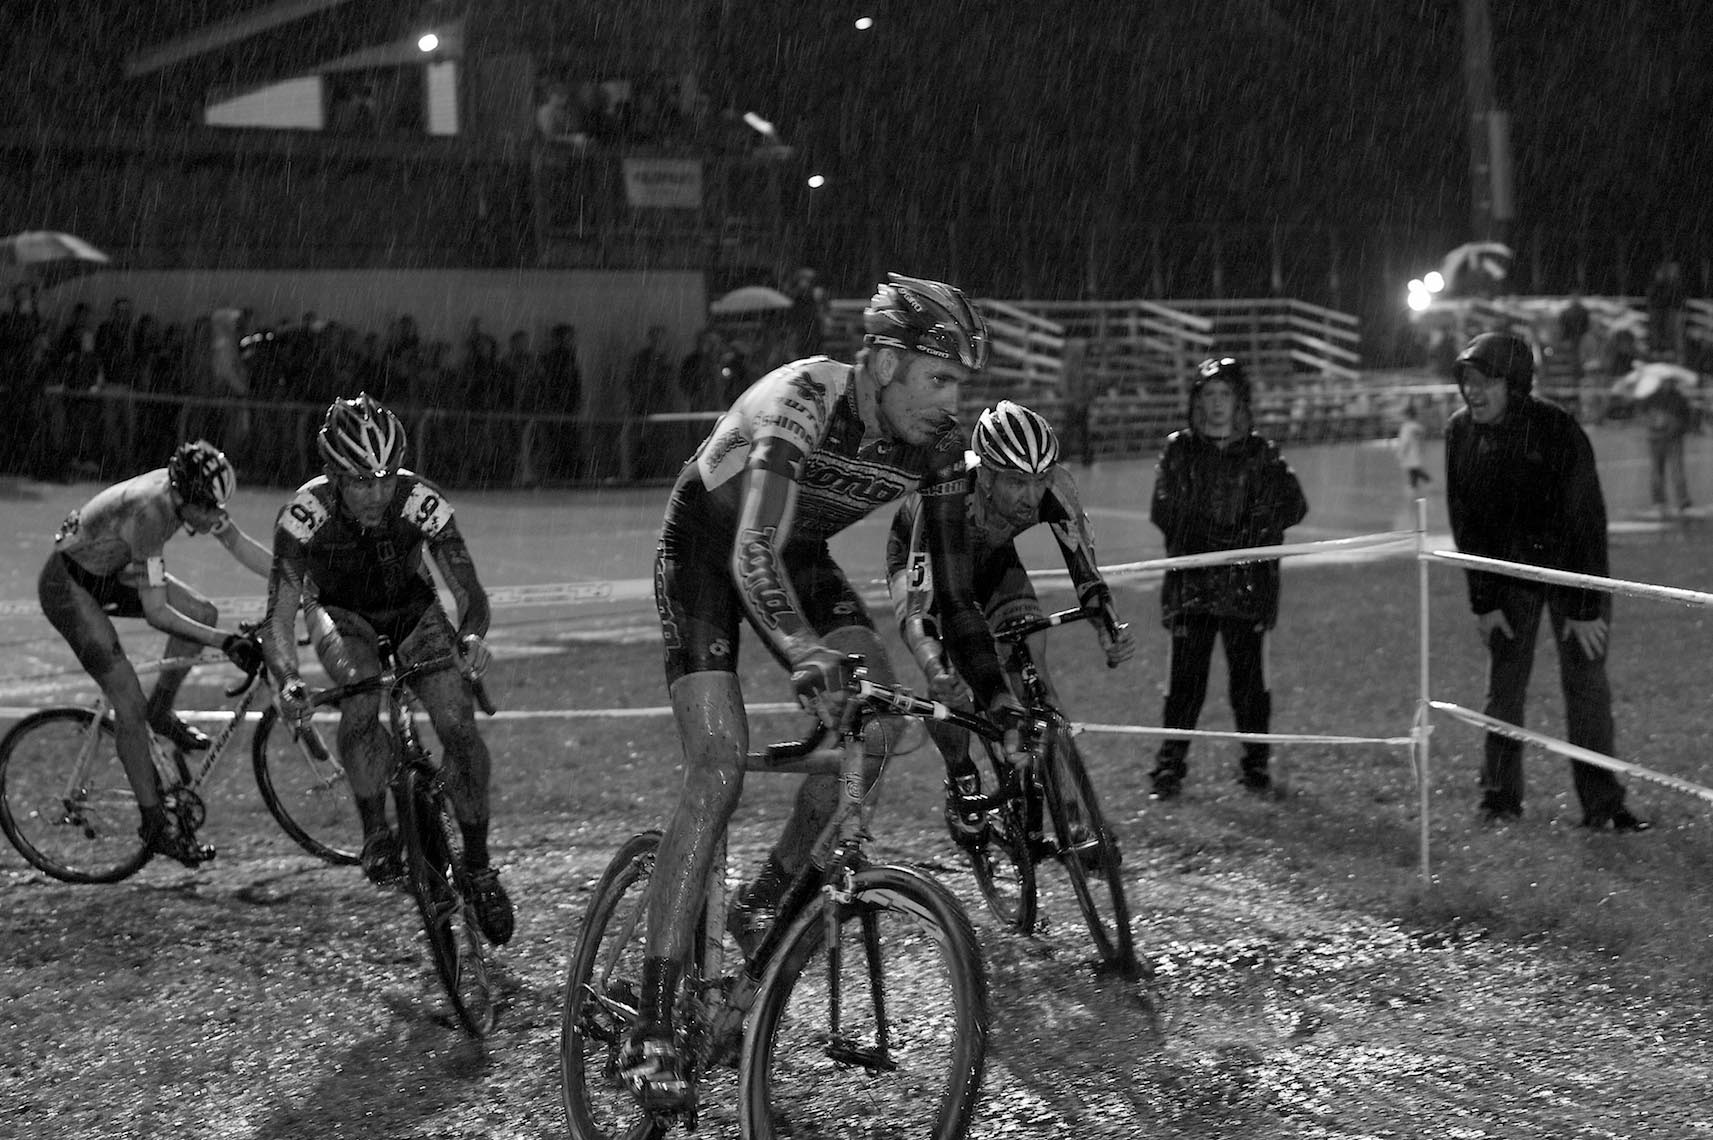 Ryan Trebon was a factor yet again at a wet Star Crossed. by Joe Sales